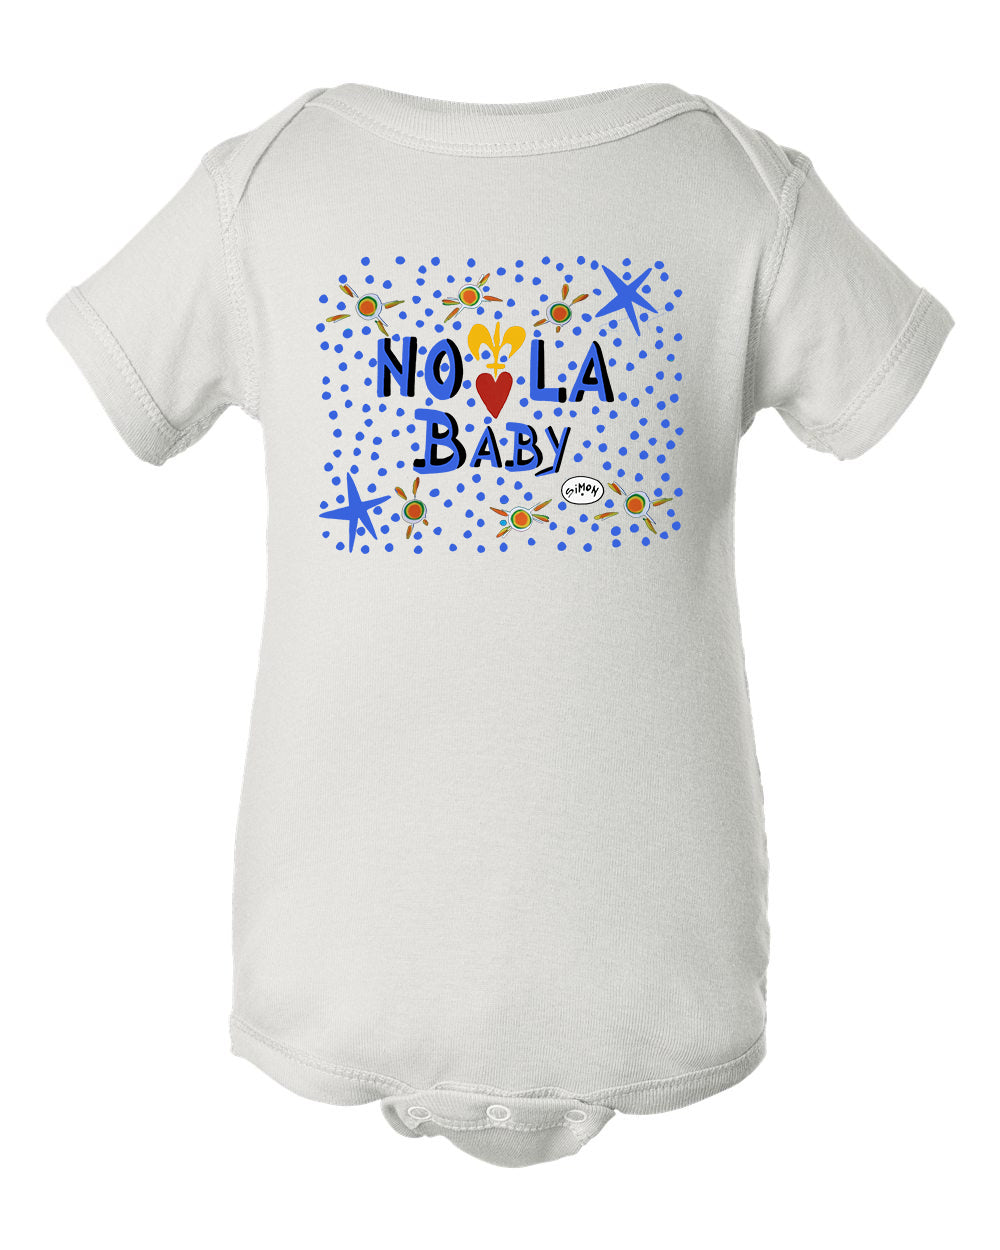 NOLA Baby in Blue - Infant Baby Rib Bodysuit - by Simon